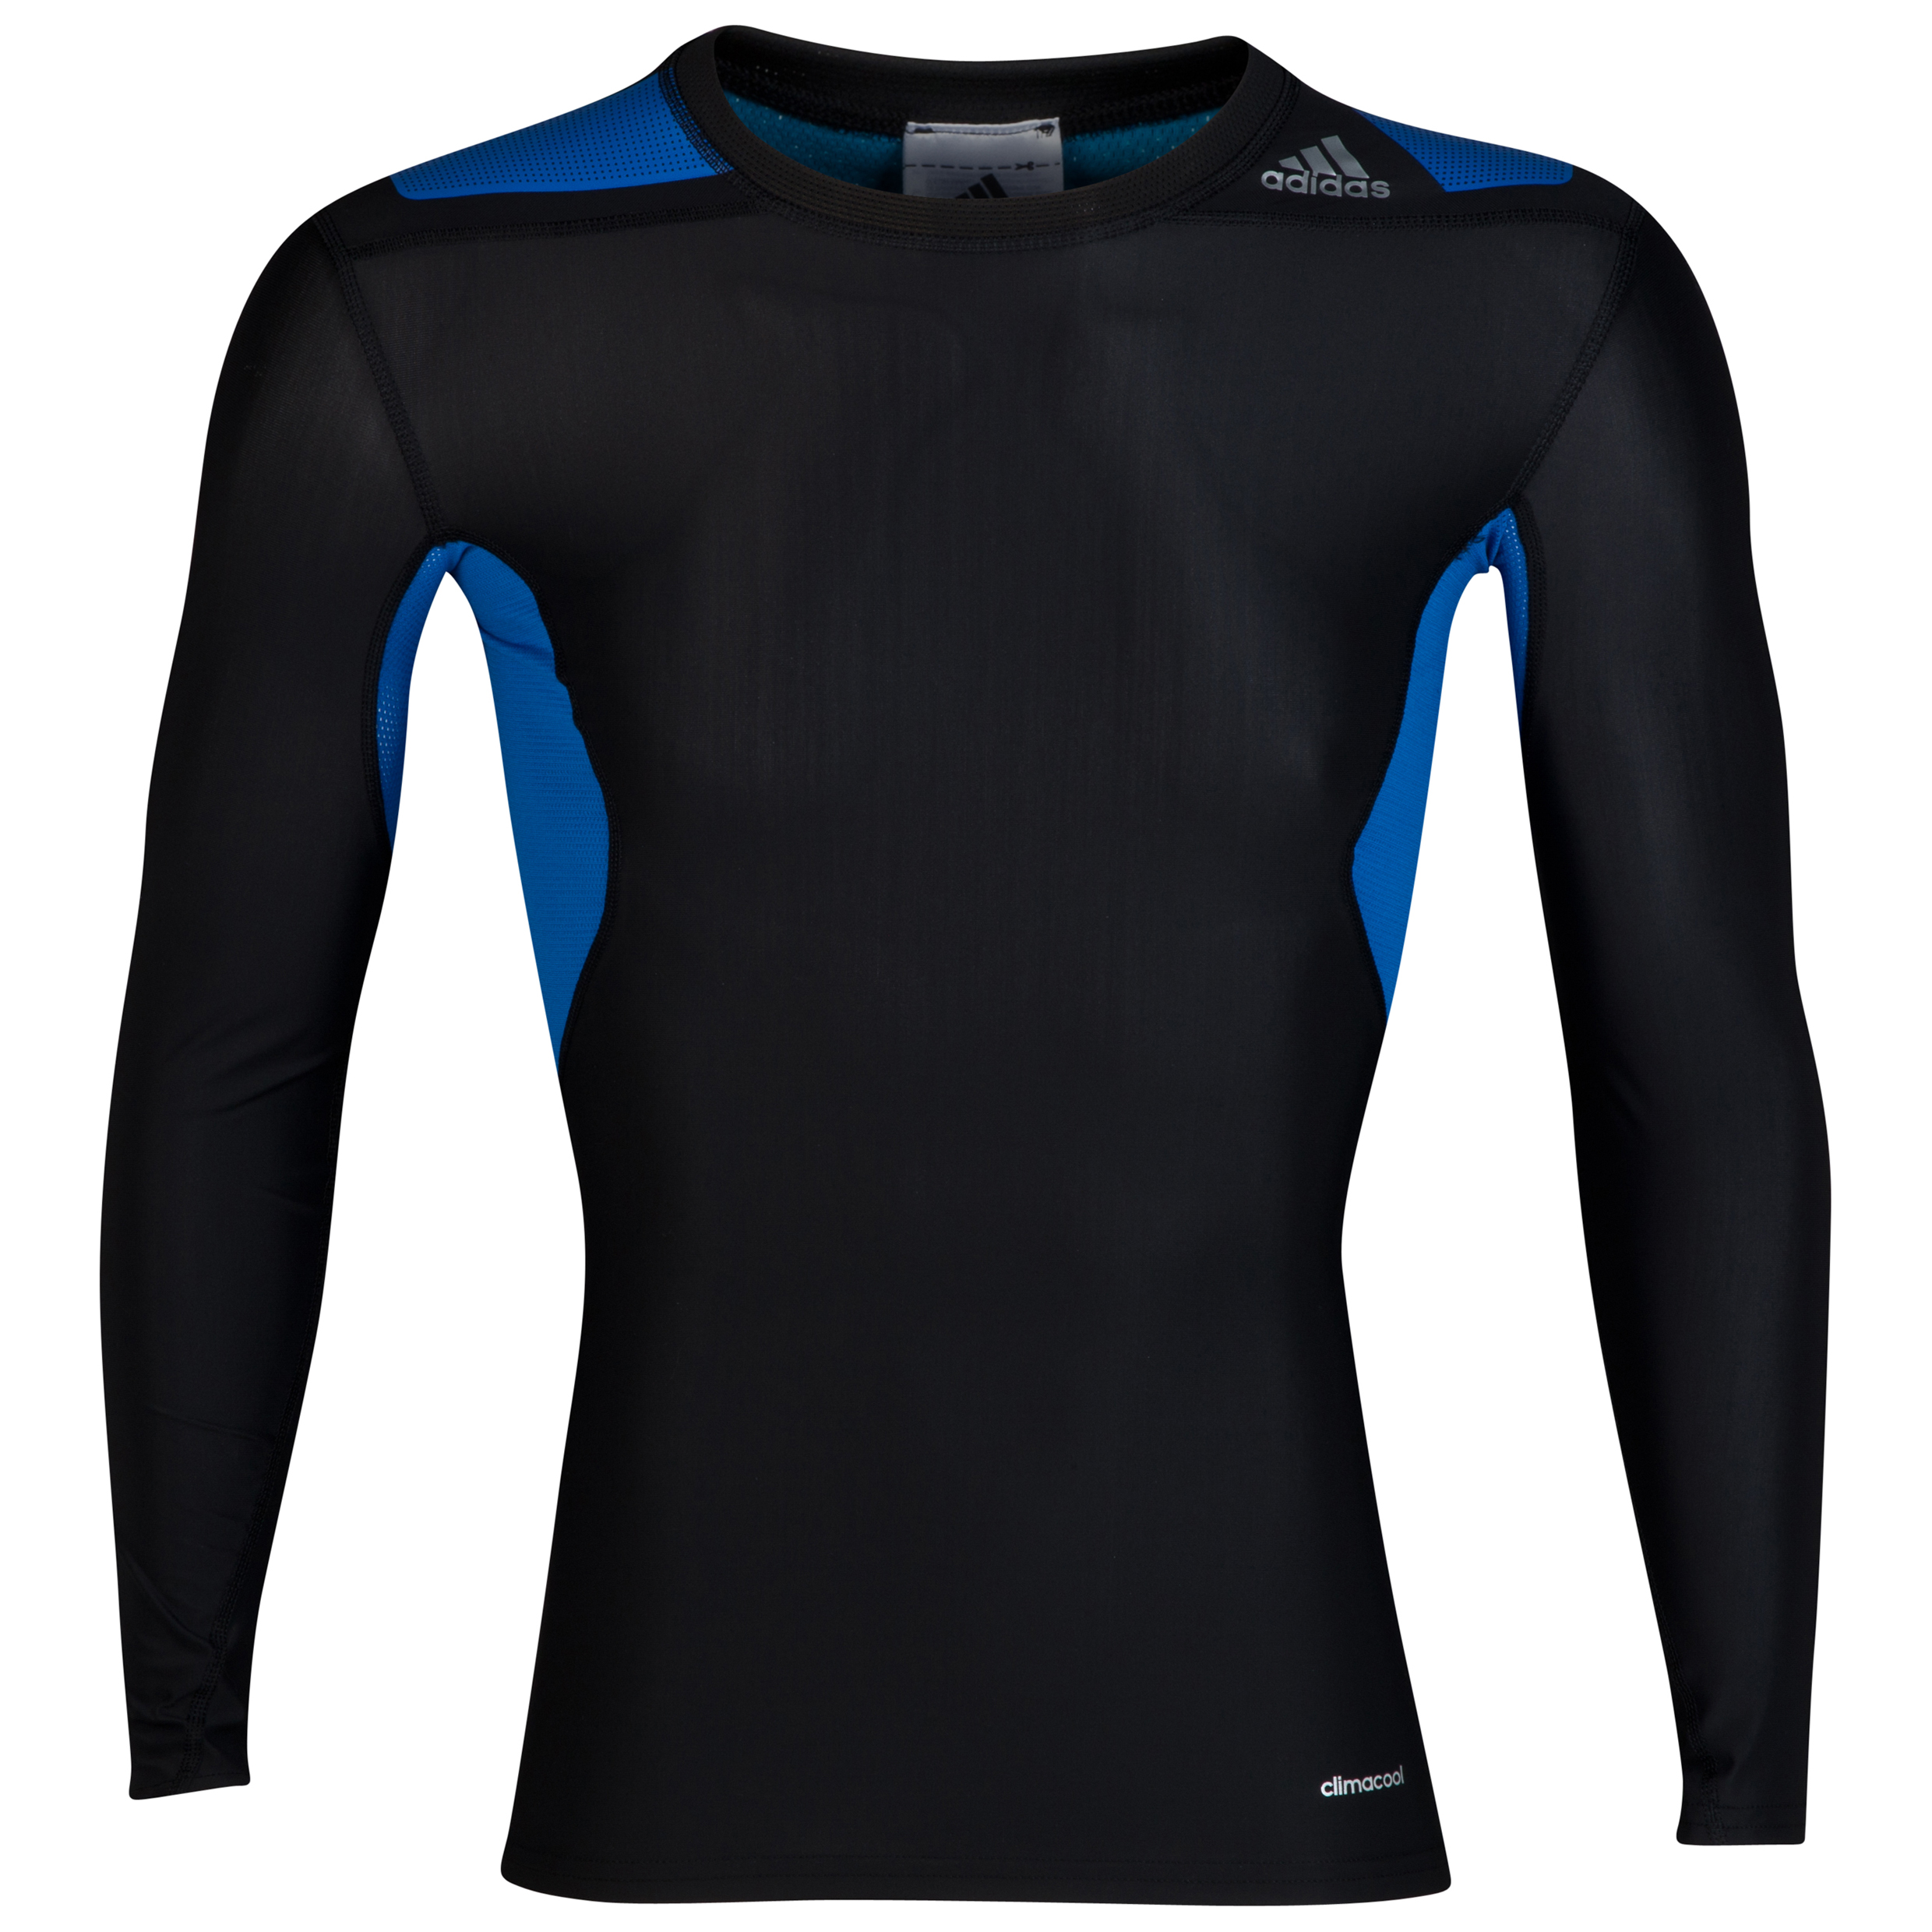 Adidas TechFit Power Base Layer Top - Long Sleeve Black